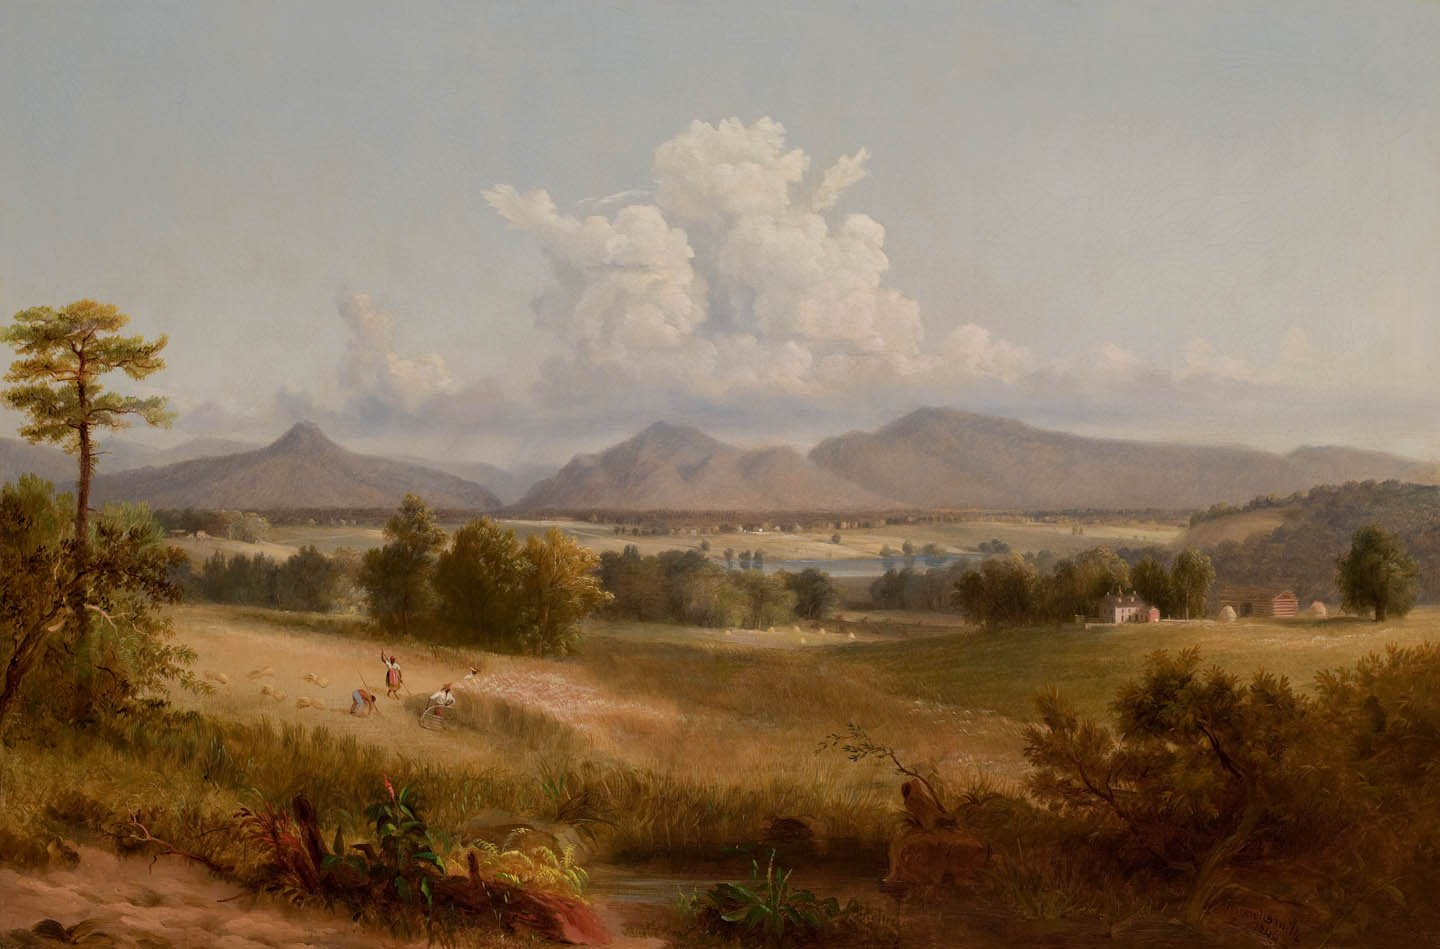 'Shenandoah_Valley'_by_William_Thompson_Russell_Smith,_1846